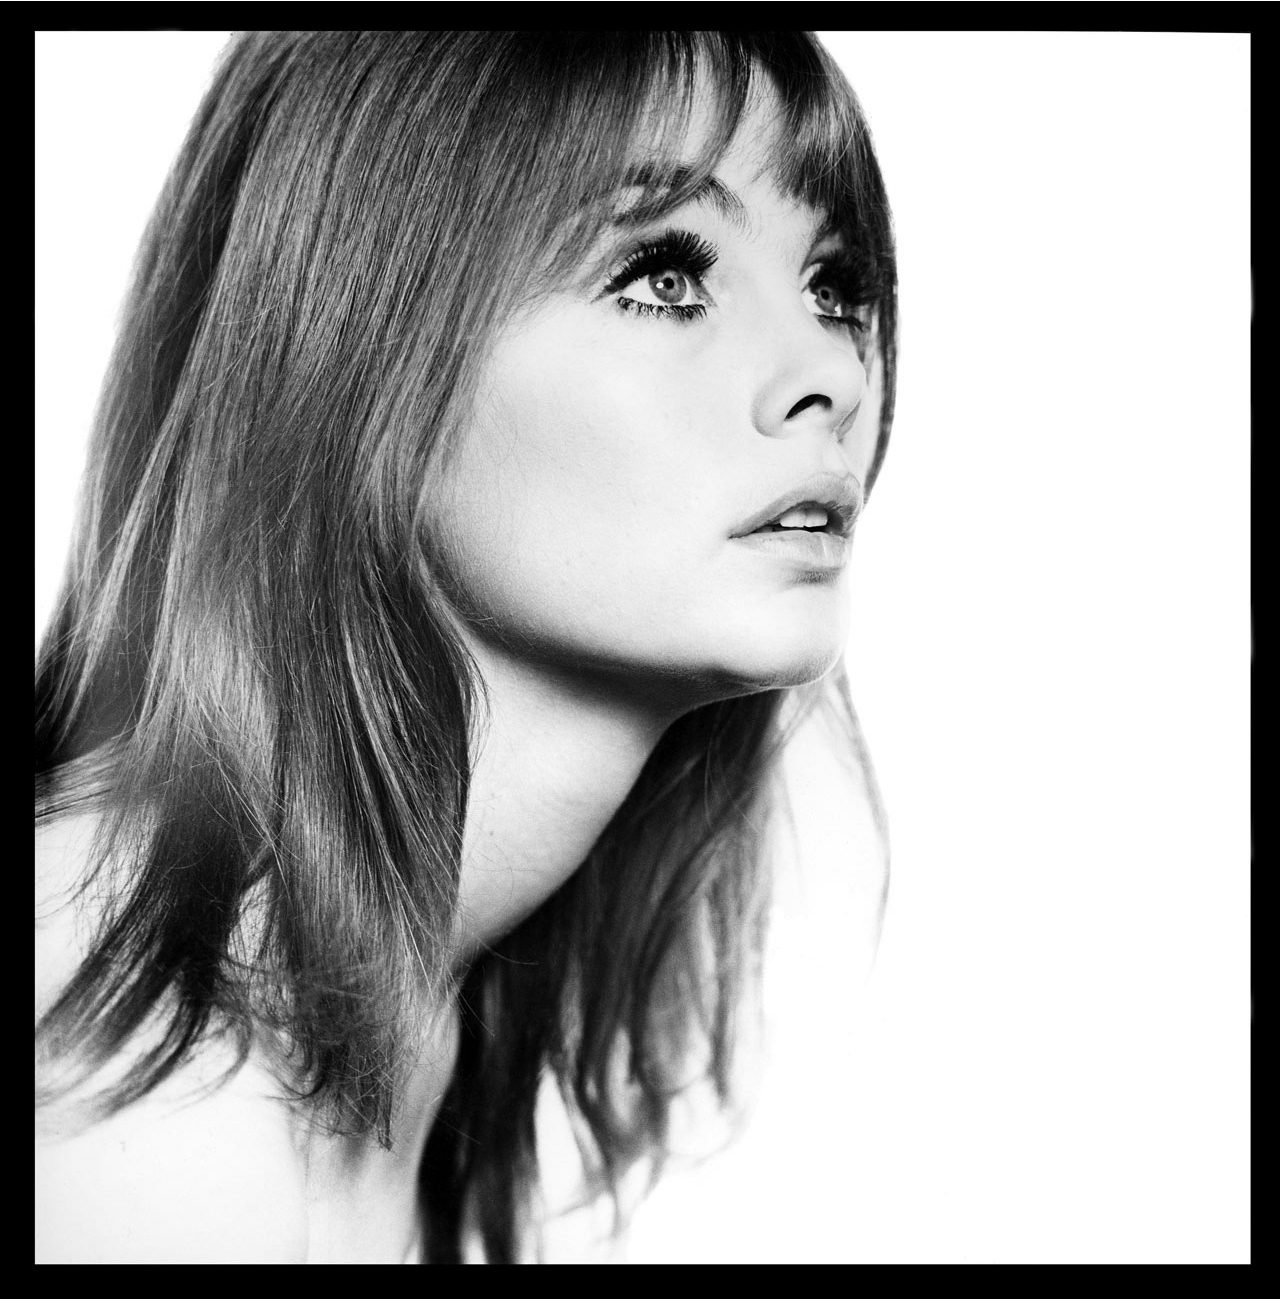 Jean Shrimpton, Head Shot, London